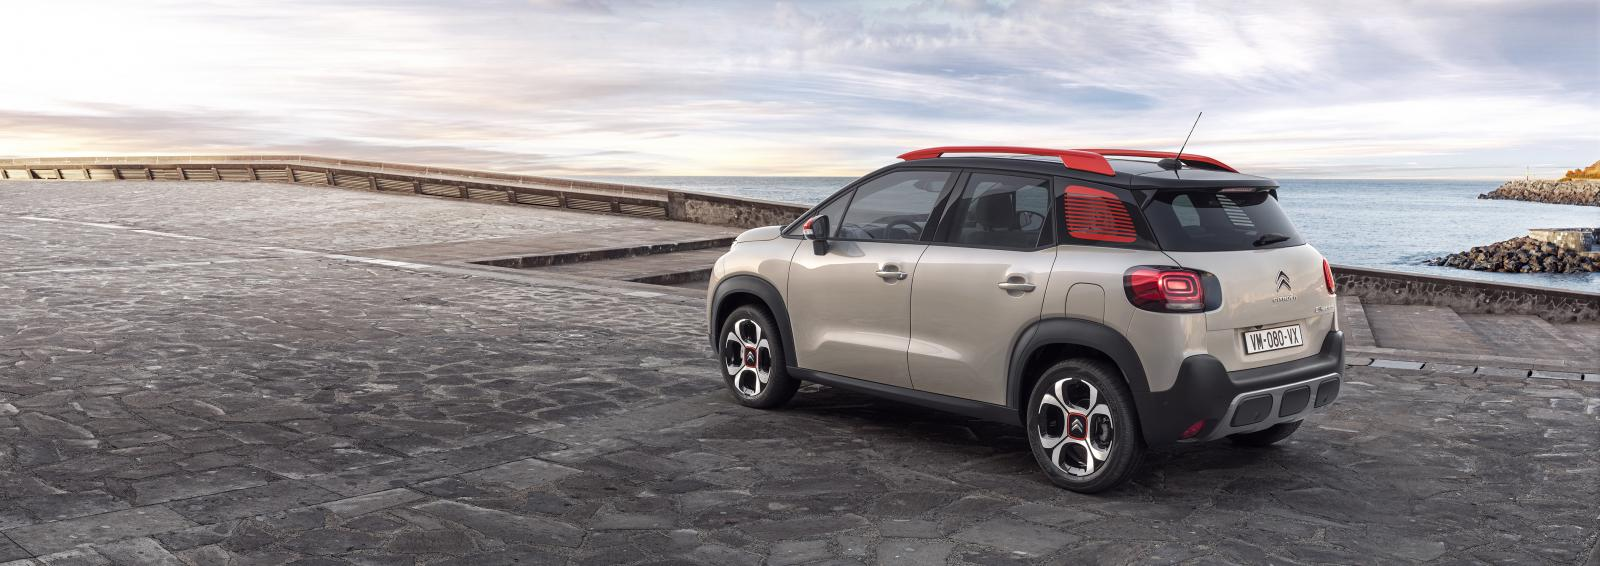 C3 Aircross Compact SUV- Sunset